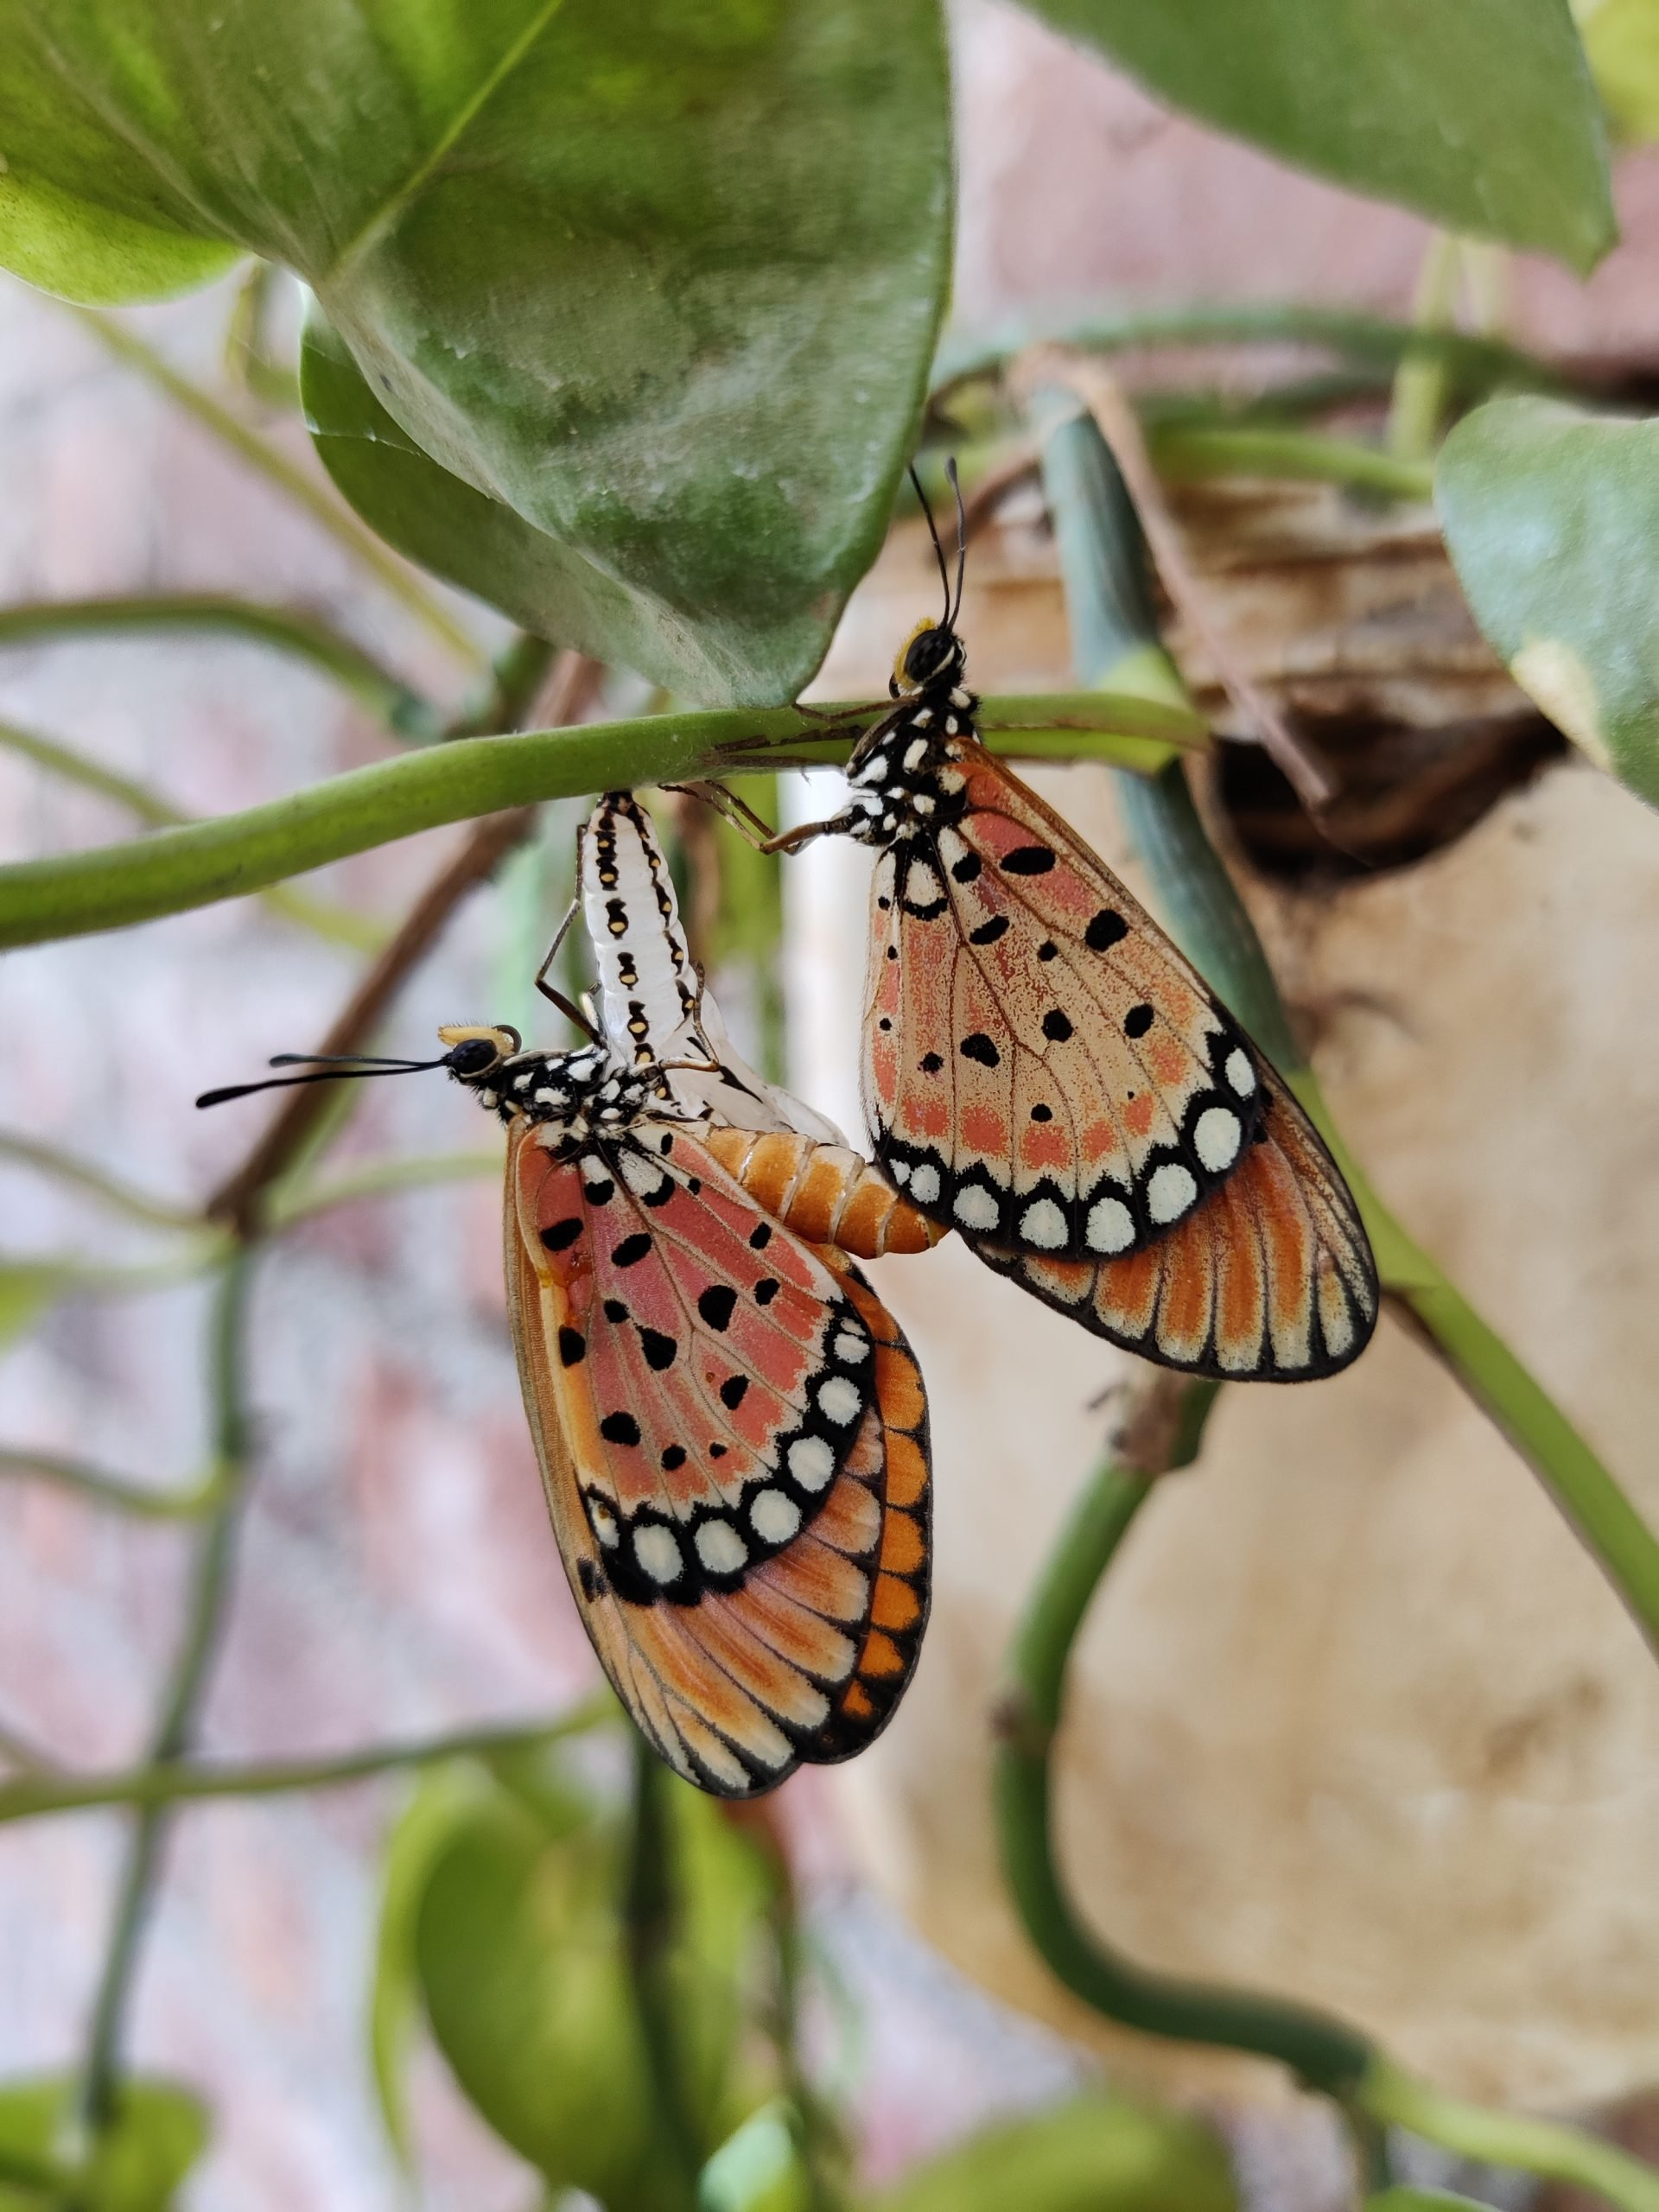 Butterflies on a plant